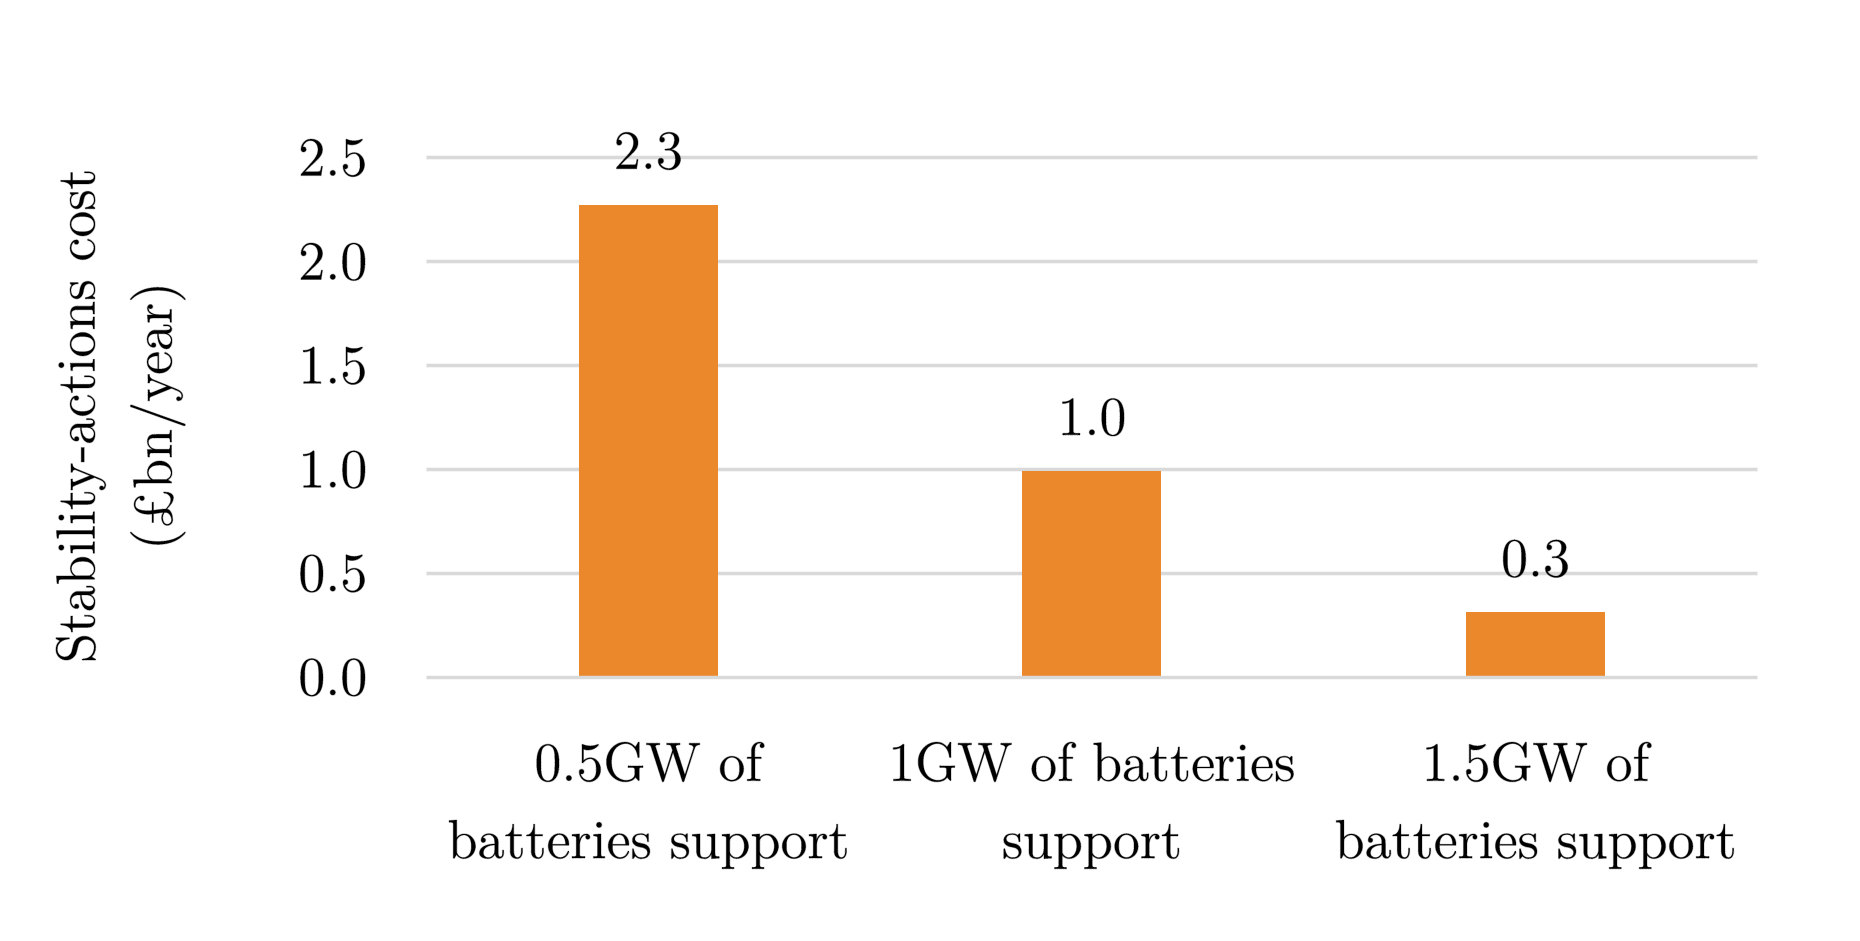 Figure 3. Projected costs for stability actions in Great Britain grid by 2030, as a function of the capacity of batteries providing stability support to the grid.